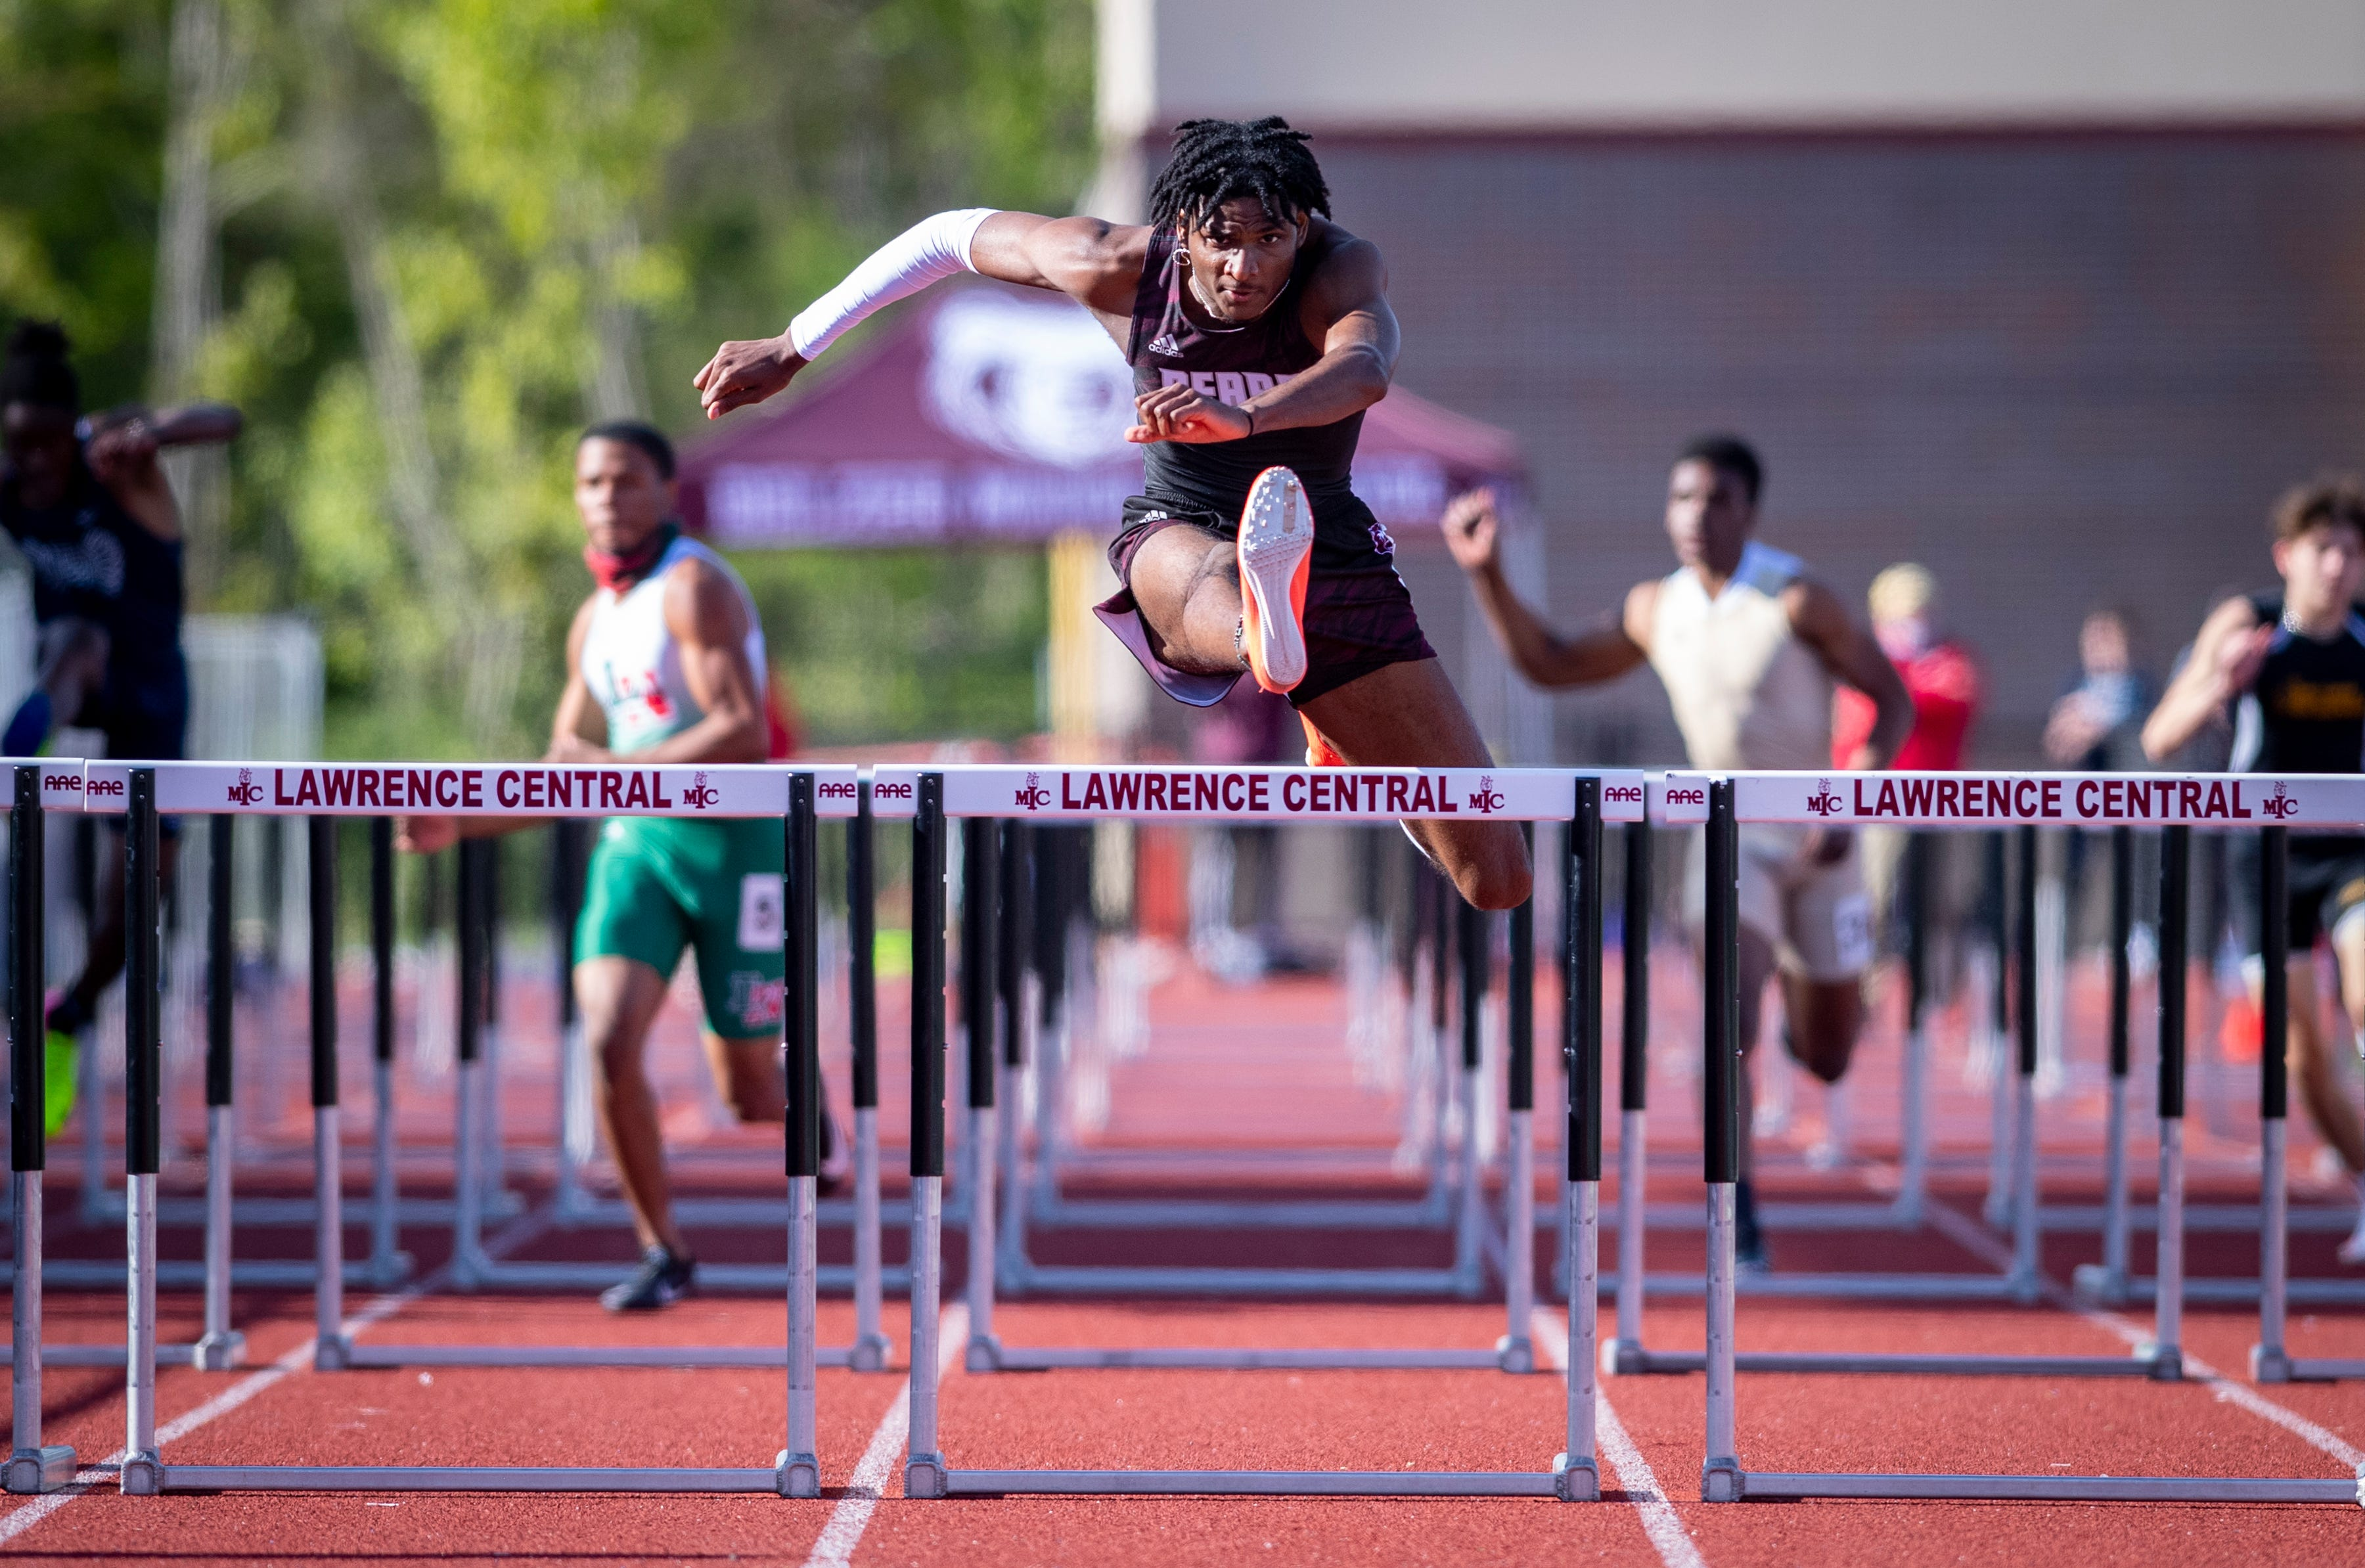 Lawrence Central's Paul Goins runs state's fastest hurdles race